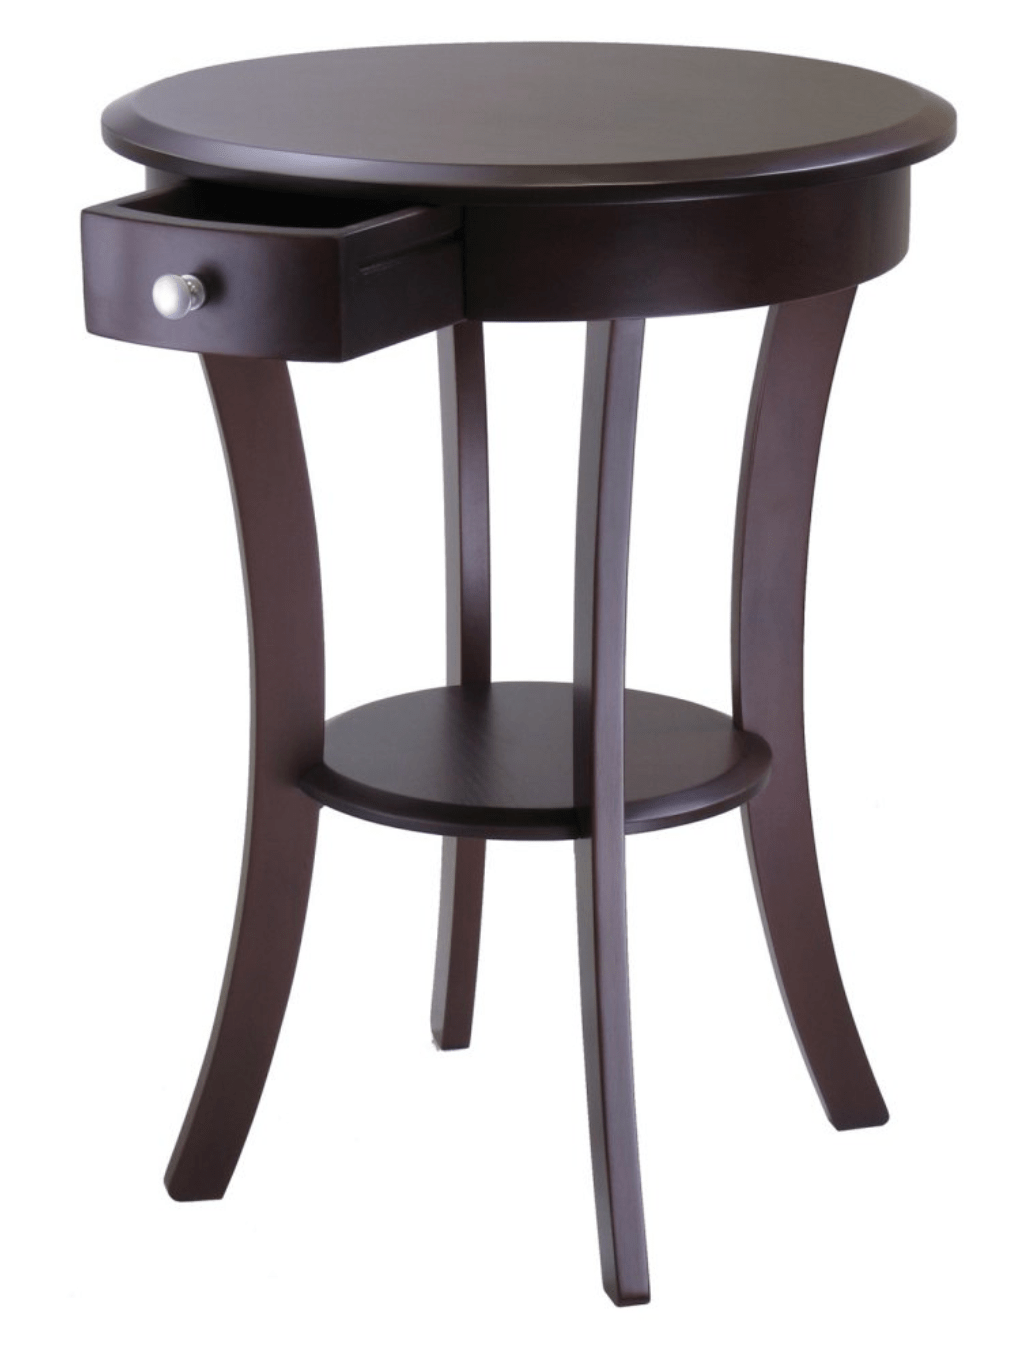 lovely small accent table for round wood min patio contemporary the bedroom target kids dining mats hurricane lamp dark mango furniture cabin modern split barn door kitchen